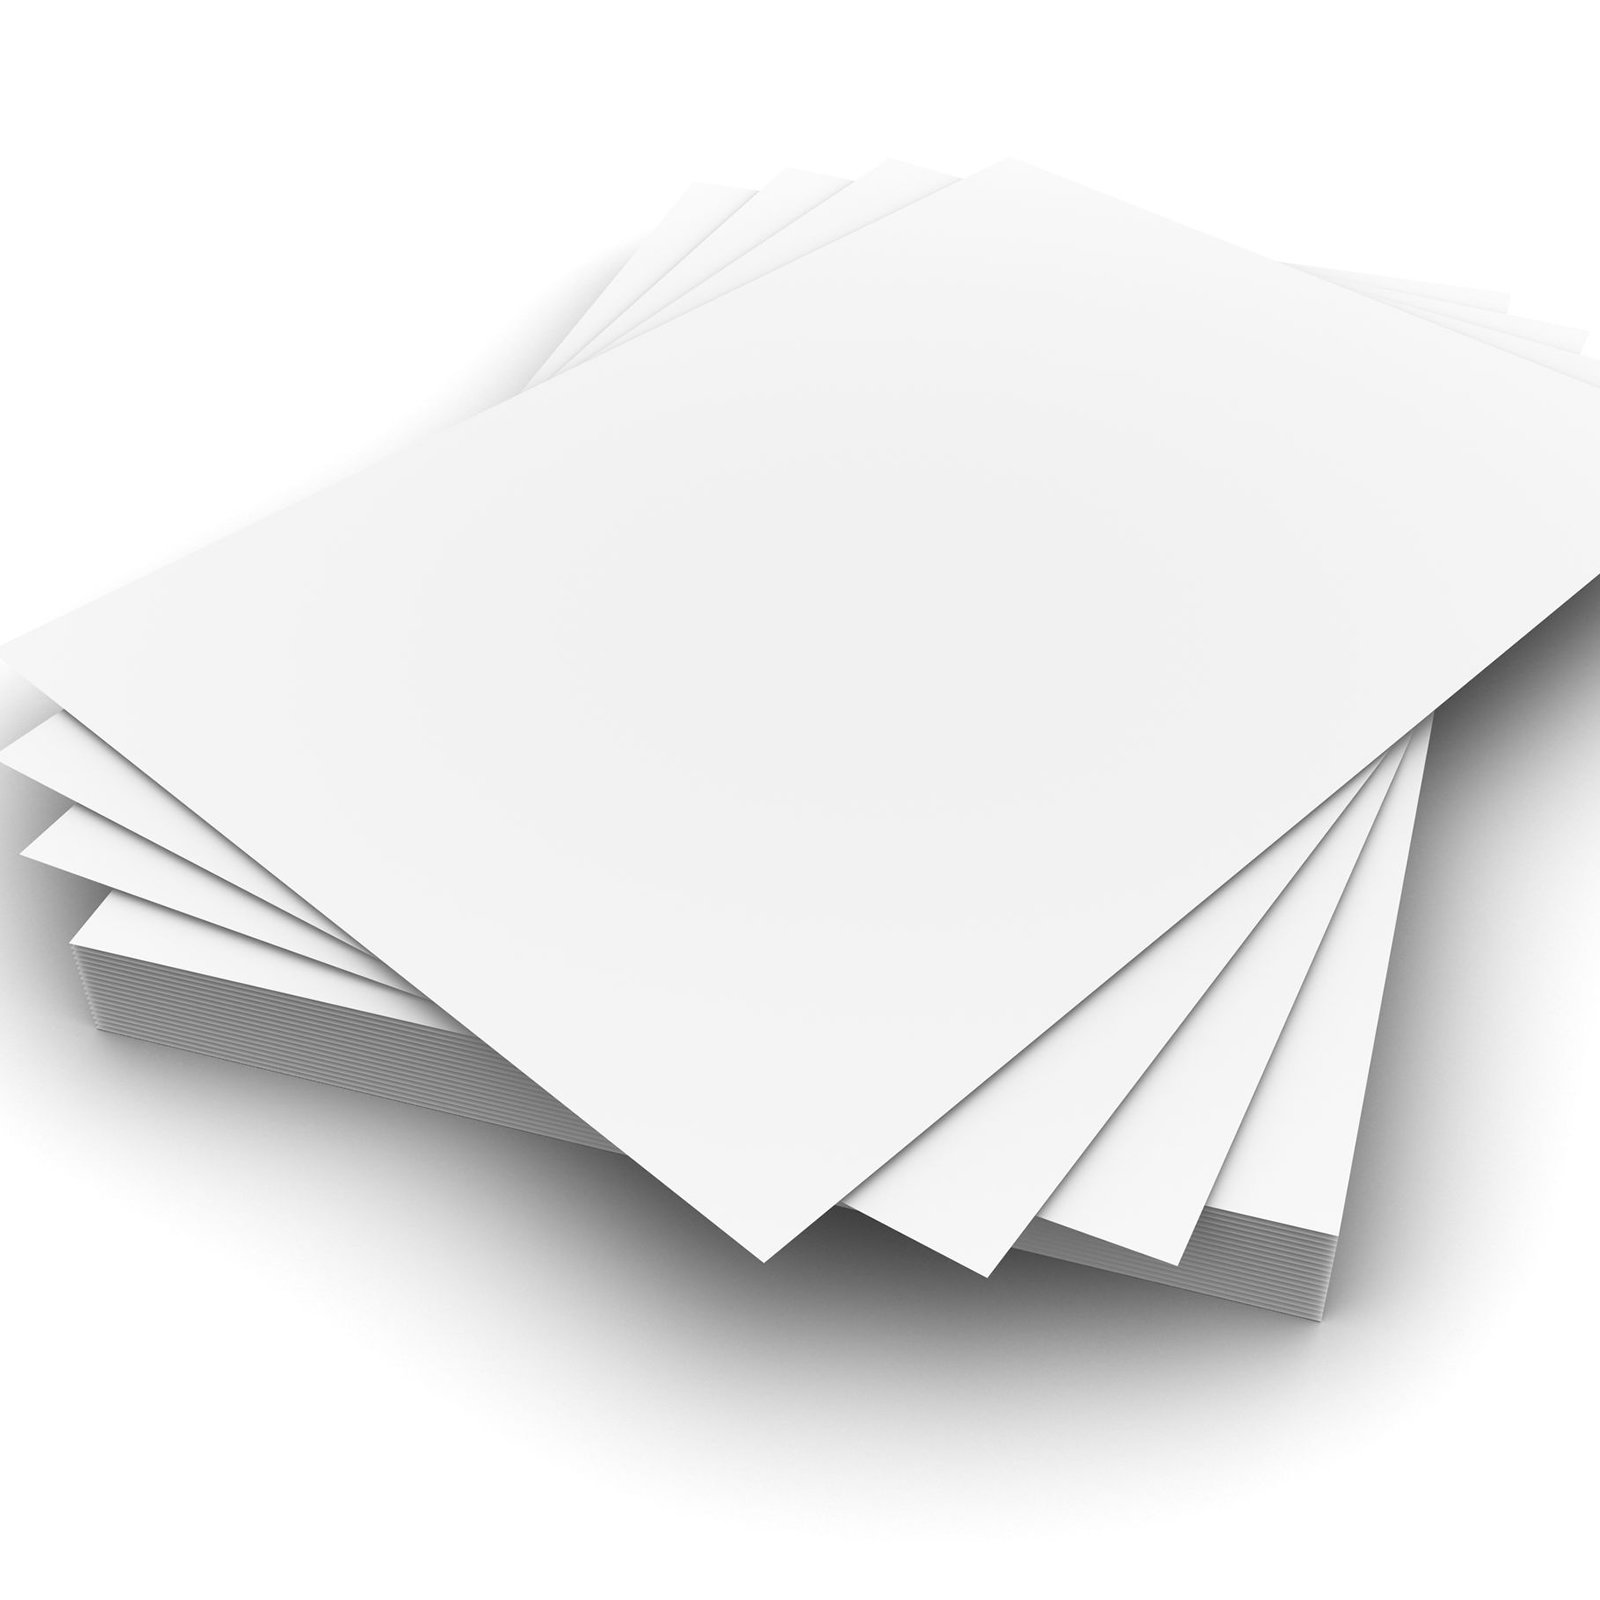 100 Sheets A4 250gsm White Card - Premium Thick Printing Paper Suitable for  All Printers- Buy Online in India at desertcart.in. ProductId : 49899622.